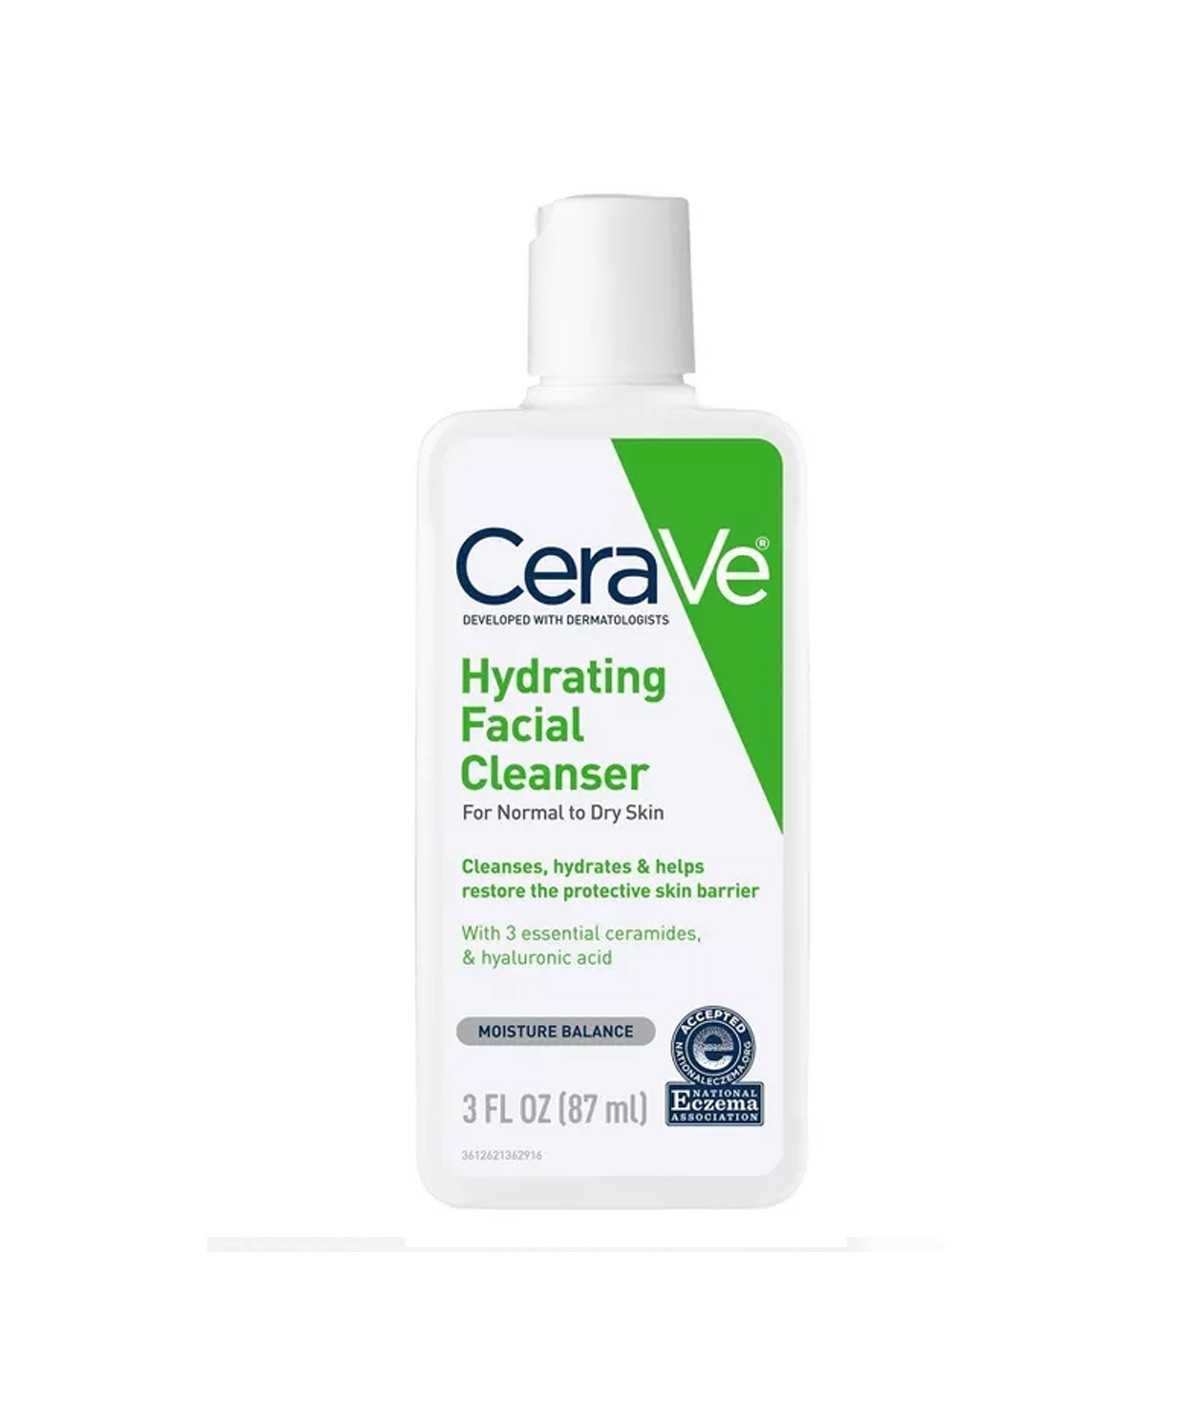 CeraVe Hydrating Facial Cleanser for Normal to Dry Skin – 3oz